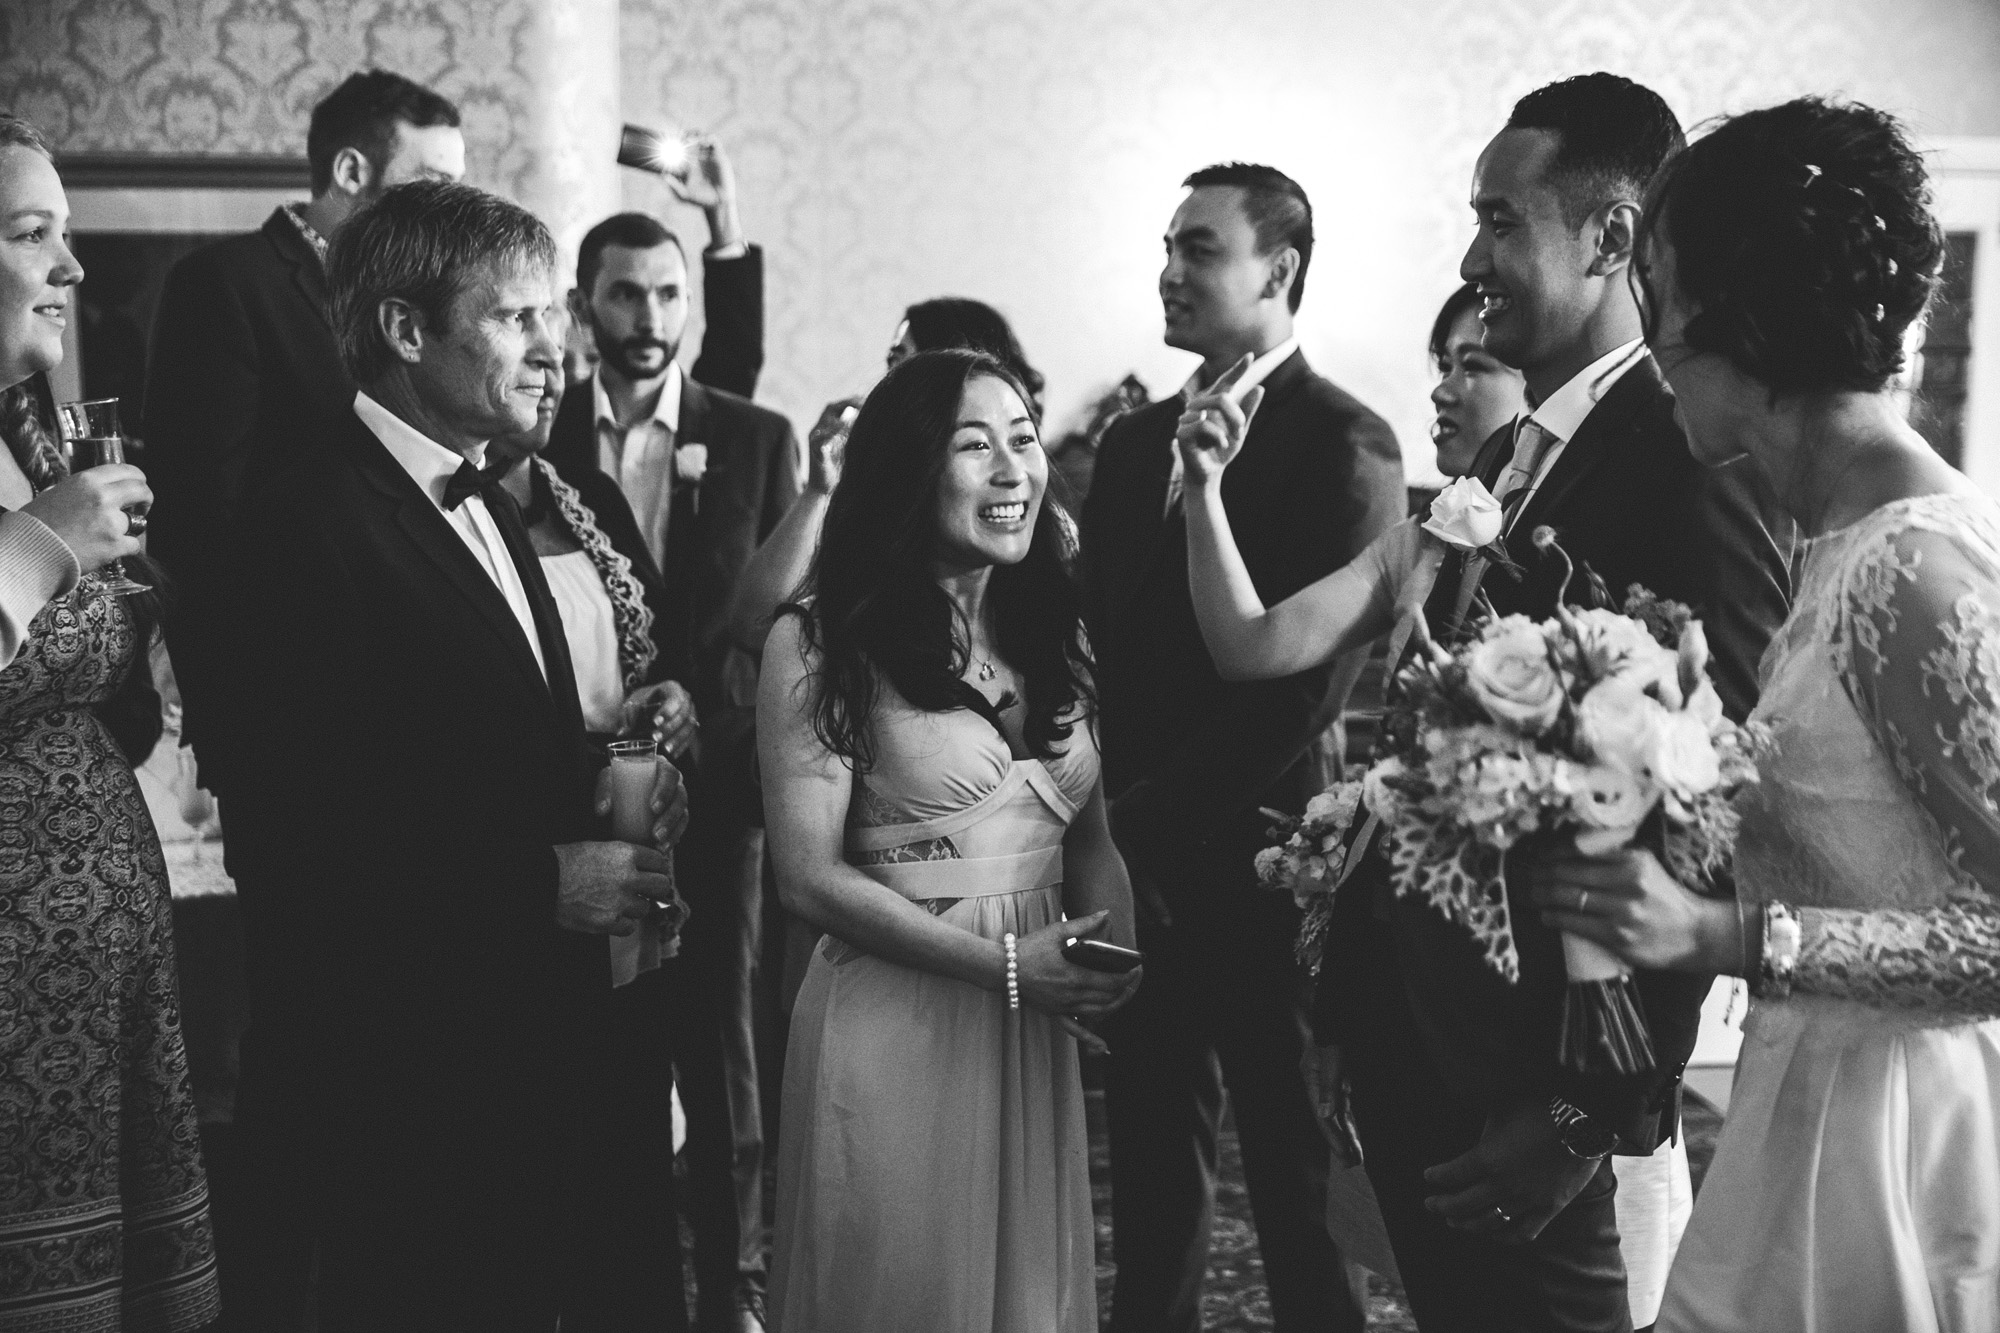 Sarah_McEvoy_Wellington_Wedding_Photographer_061.jpg